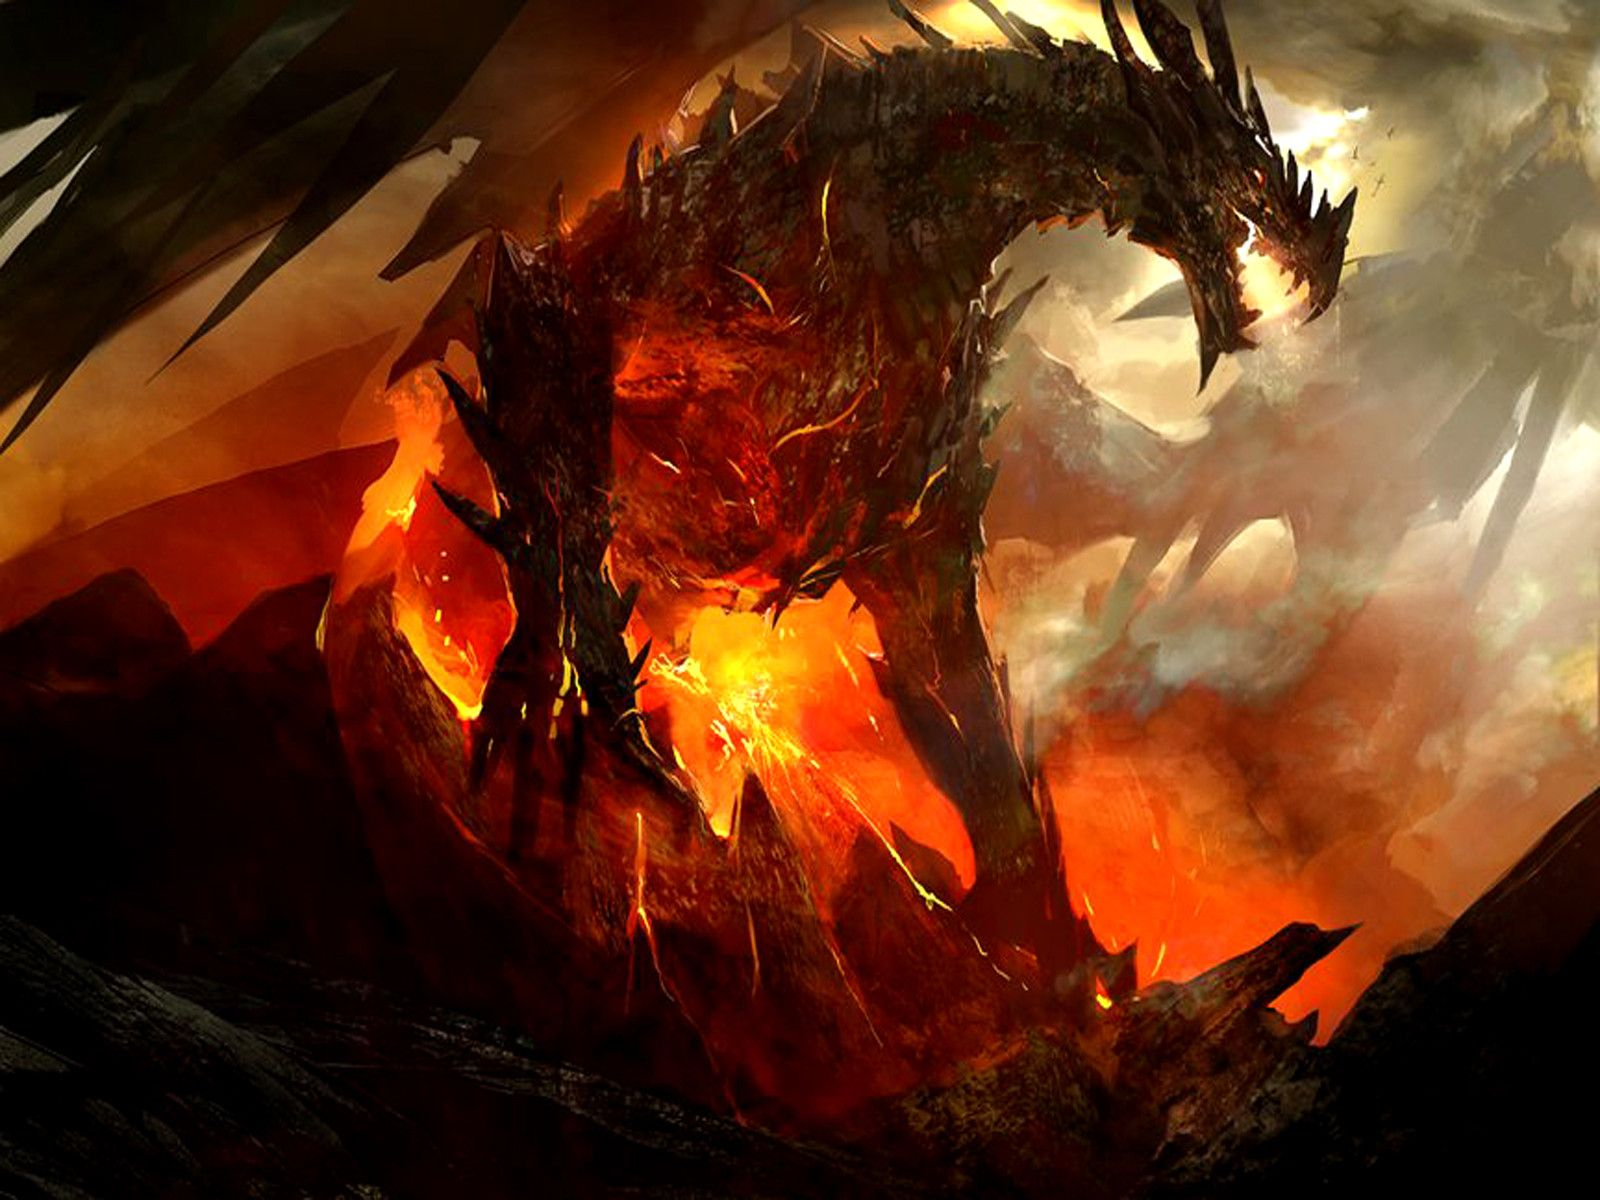 Dragon-Hd-Widescreen-CloudPix-wallpaper-wpc5804414